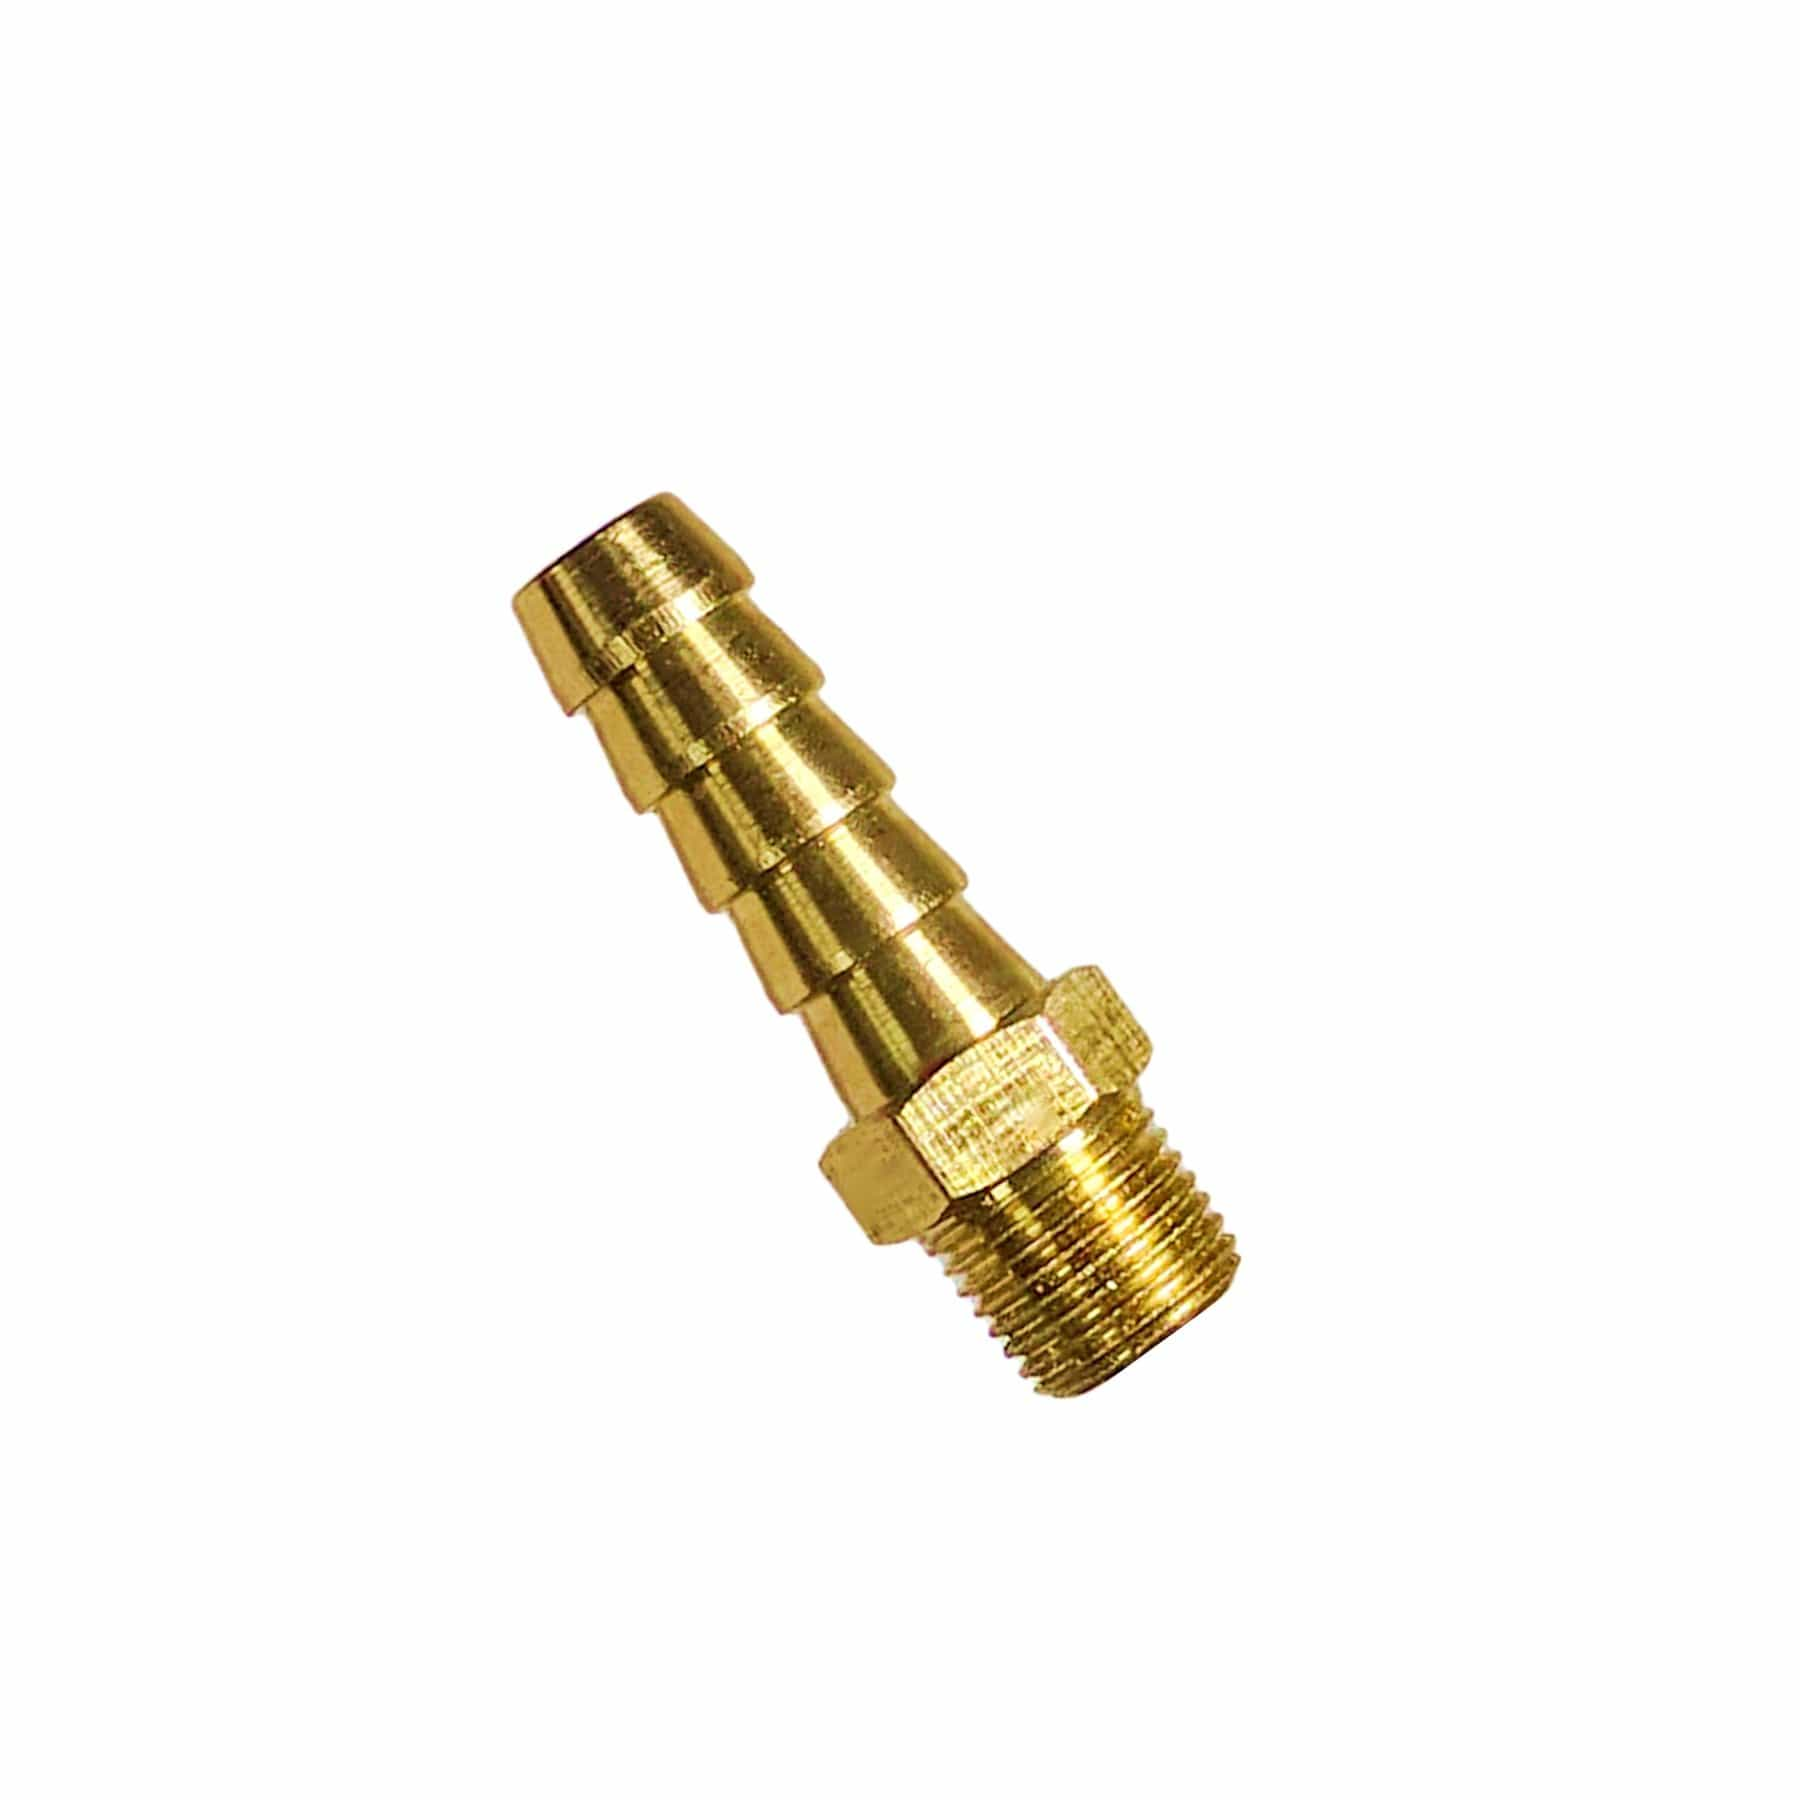 BRASS 8mm Threaded Hose Reel ADAPTER - Window Cleaning Warehouse Ltd